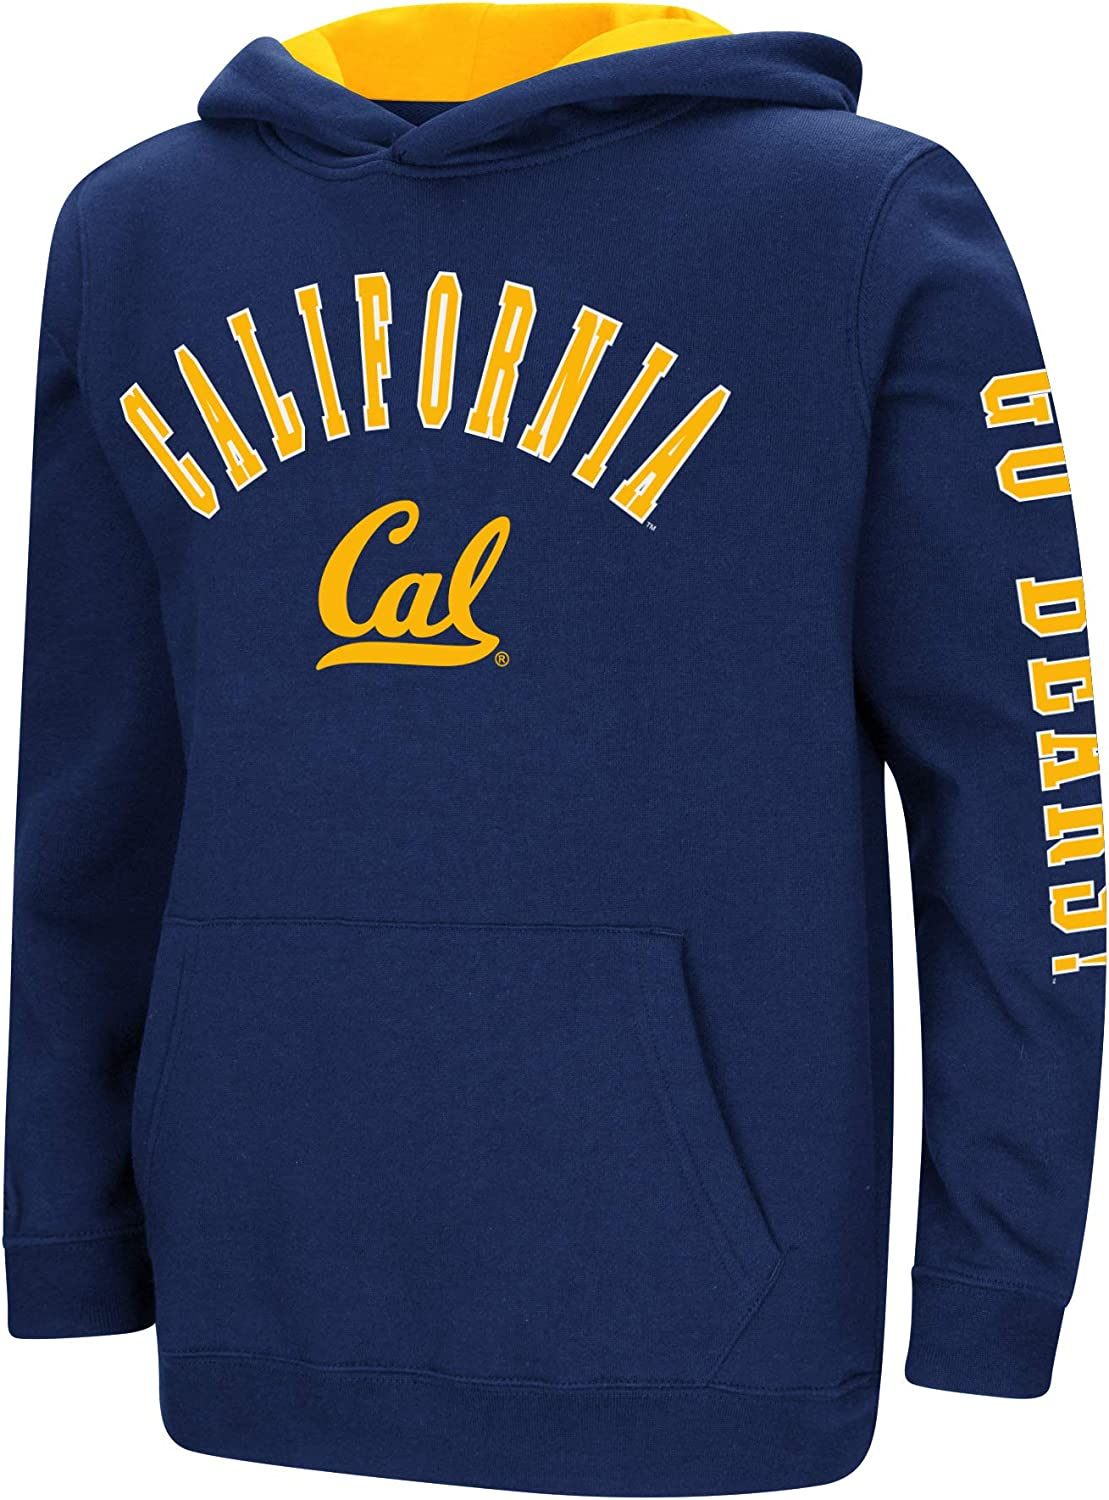 Colosseum NCAA Youth Boys-Crunch Time-Hoody Pullover